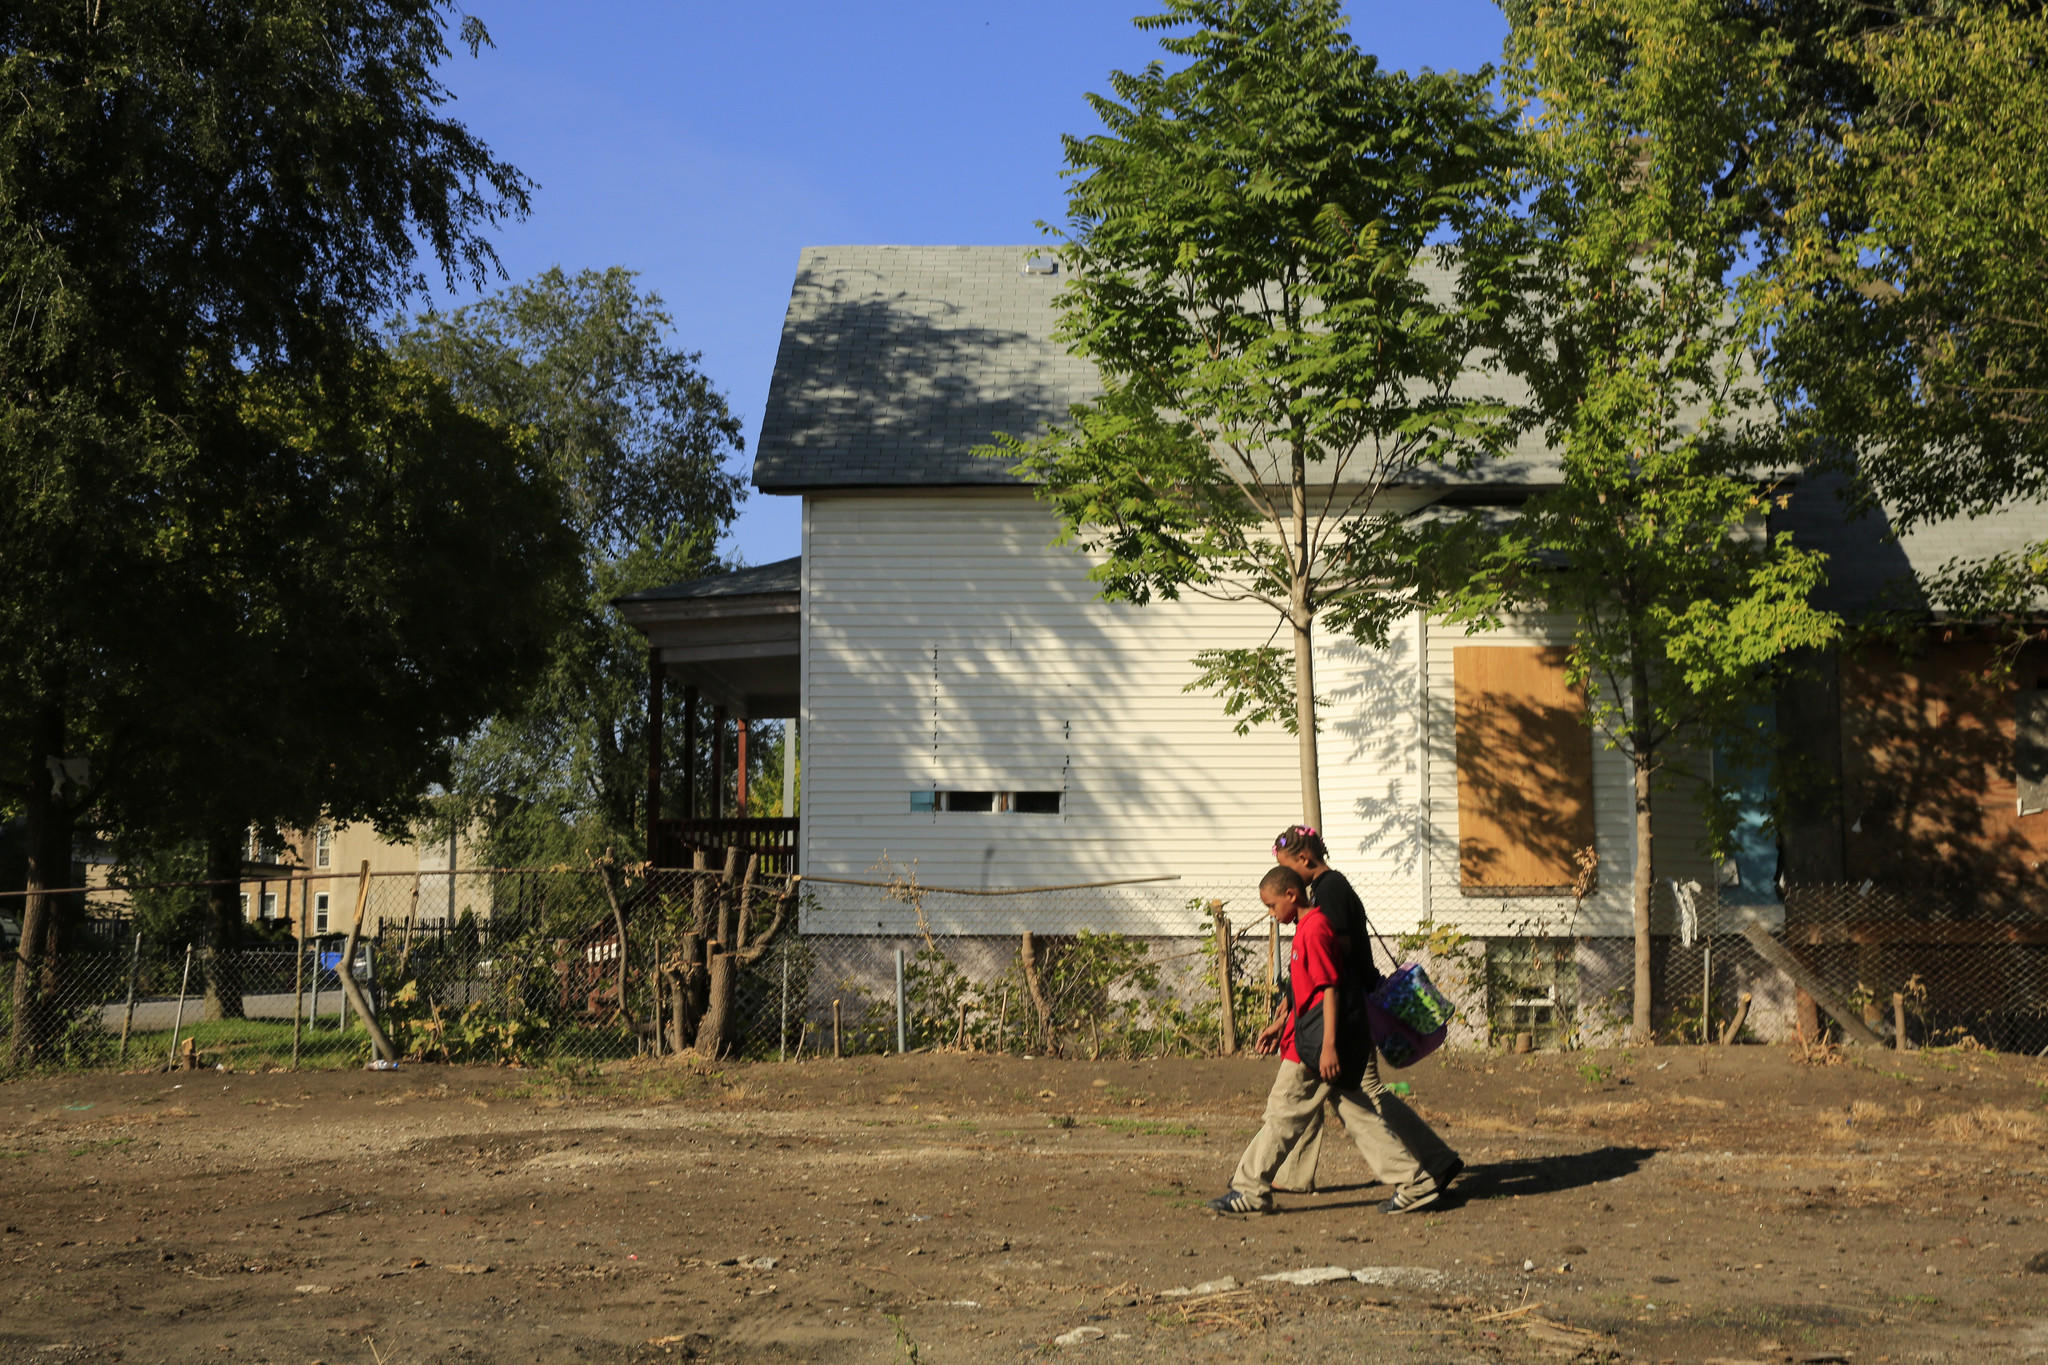 Students from nearby Mays Academy take a shortcut Wednesday, Oct. 2, 2013 across a vacant lot in the Englewood neighborhood on their way home from school.